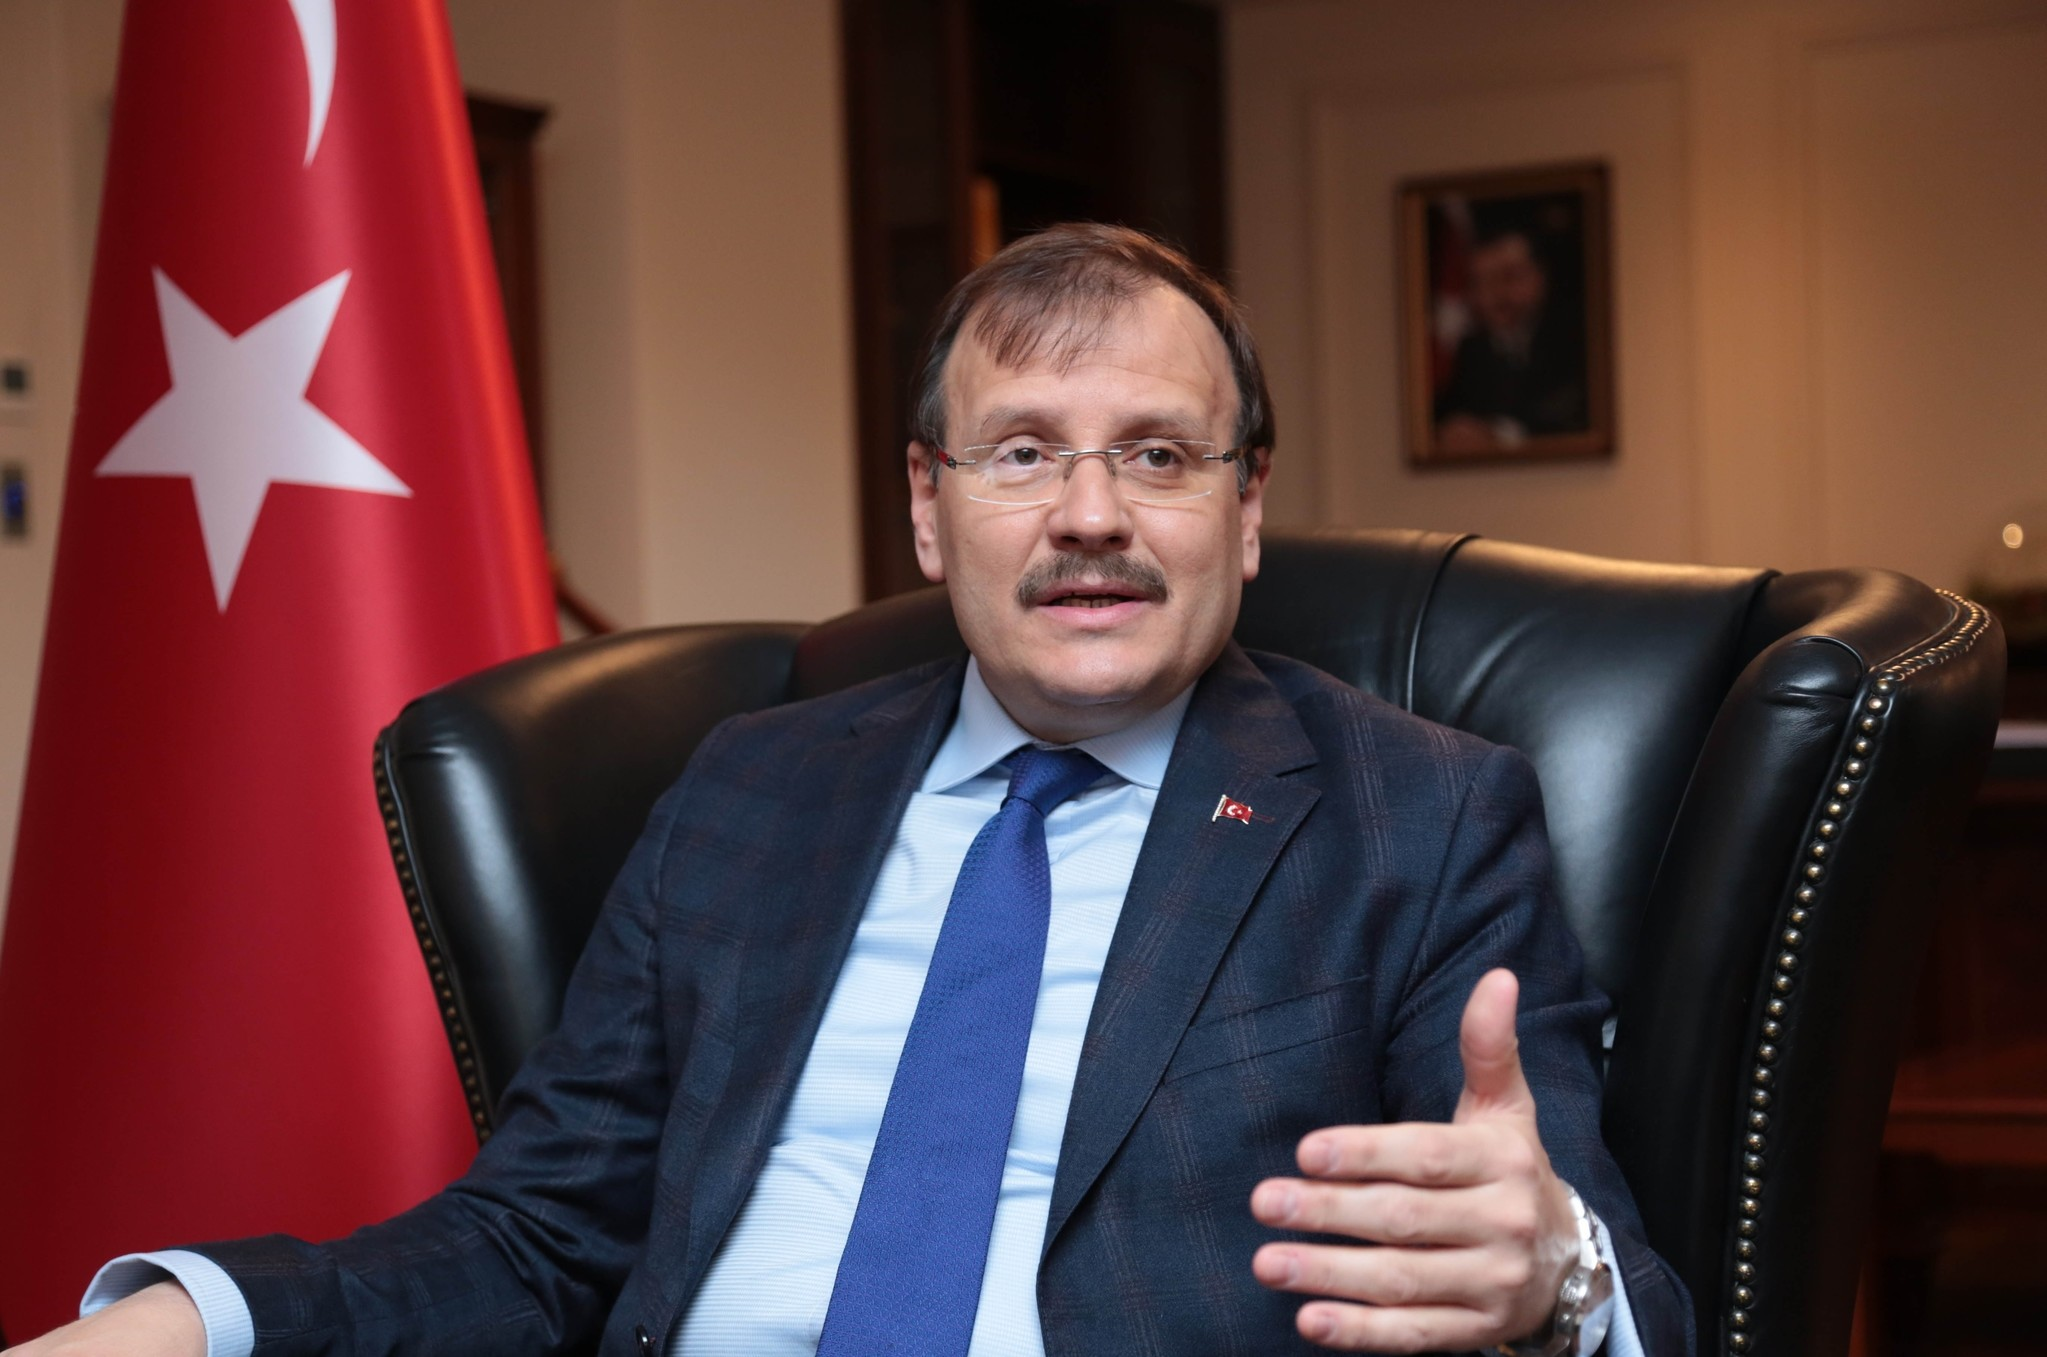 Deputy Prime Minister Hakan u00c7avuu015fou011flu said Turkey is being accused of targeting civilians despite the PYDu2019s clear disregard for human life as a blatant attempt to cover up what the terrorist group is doing.